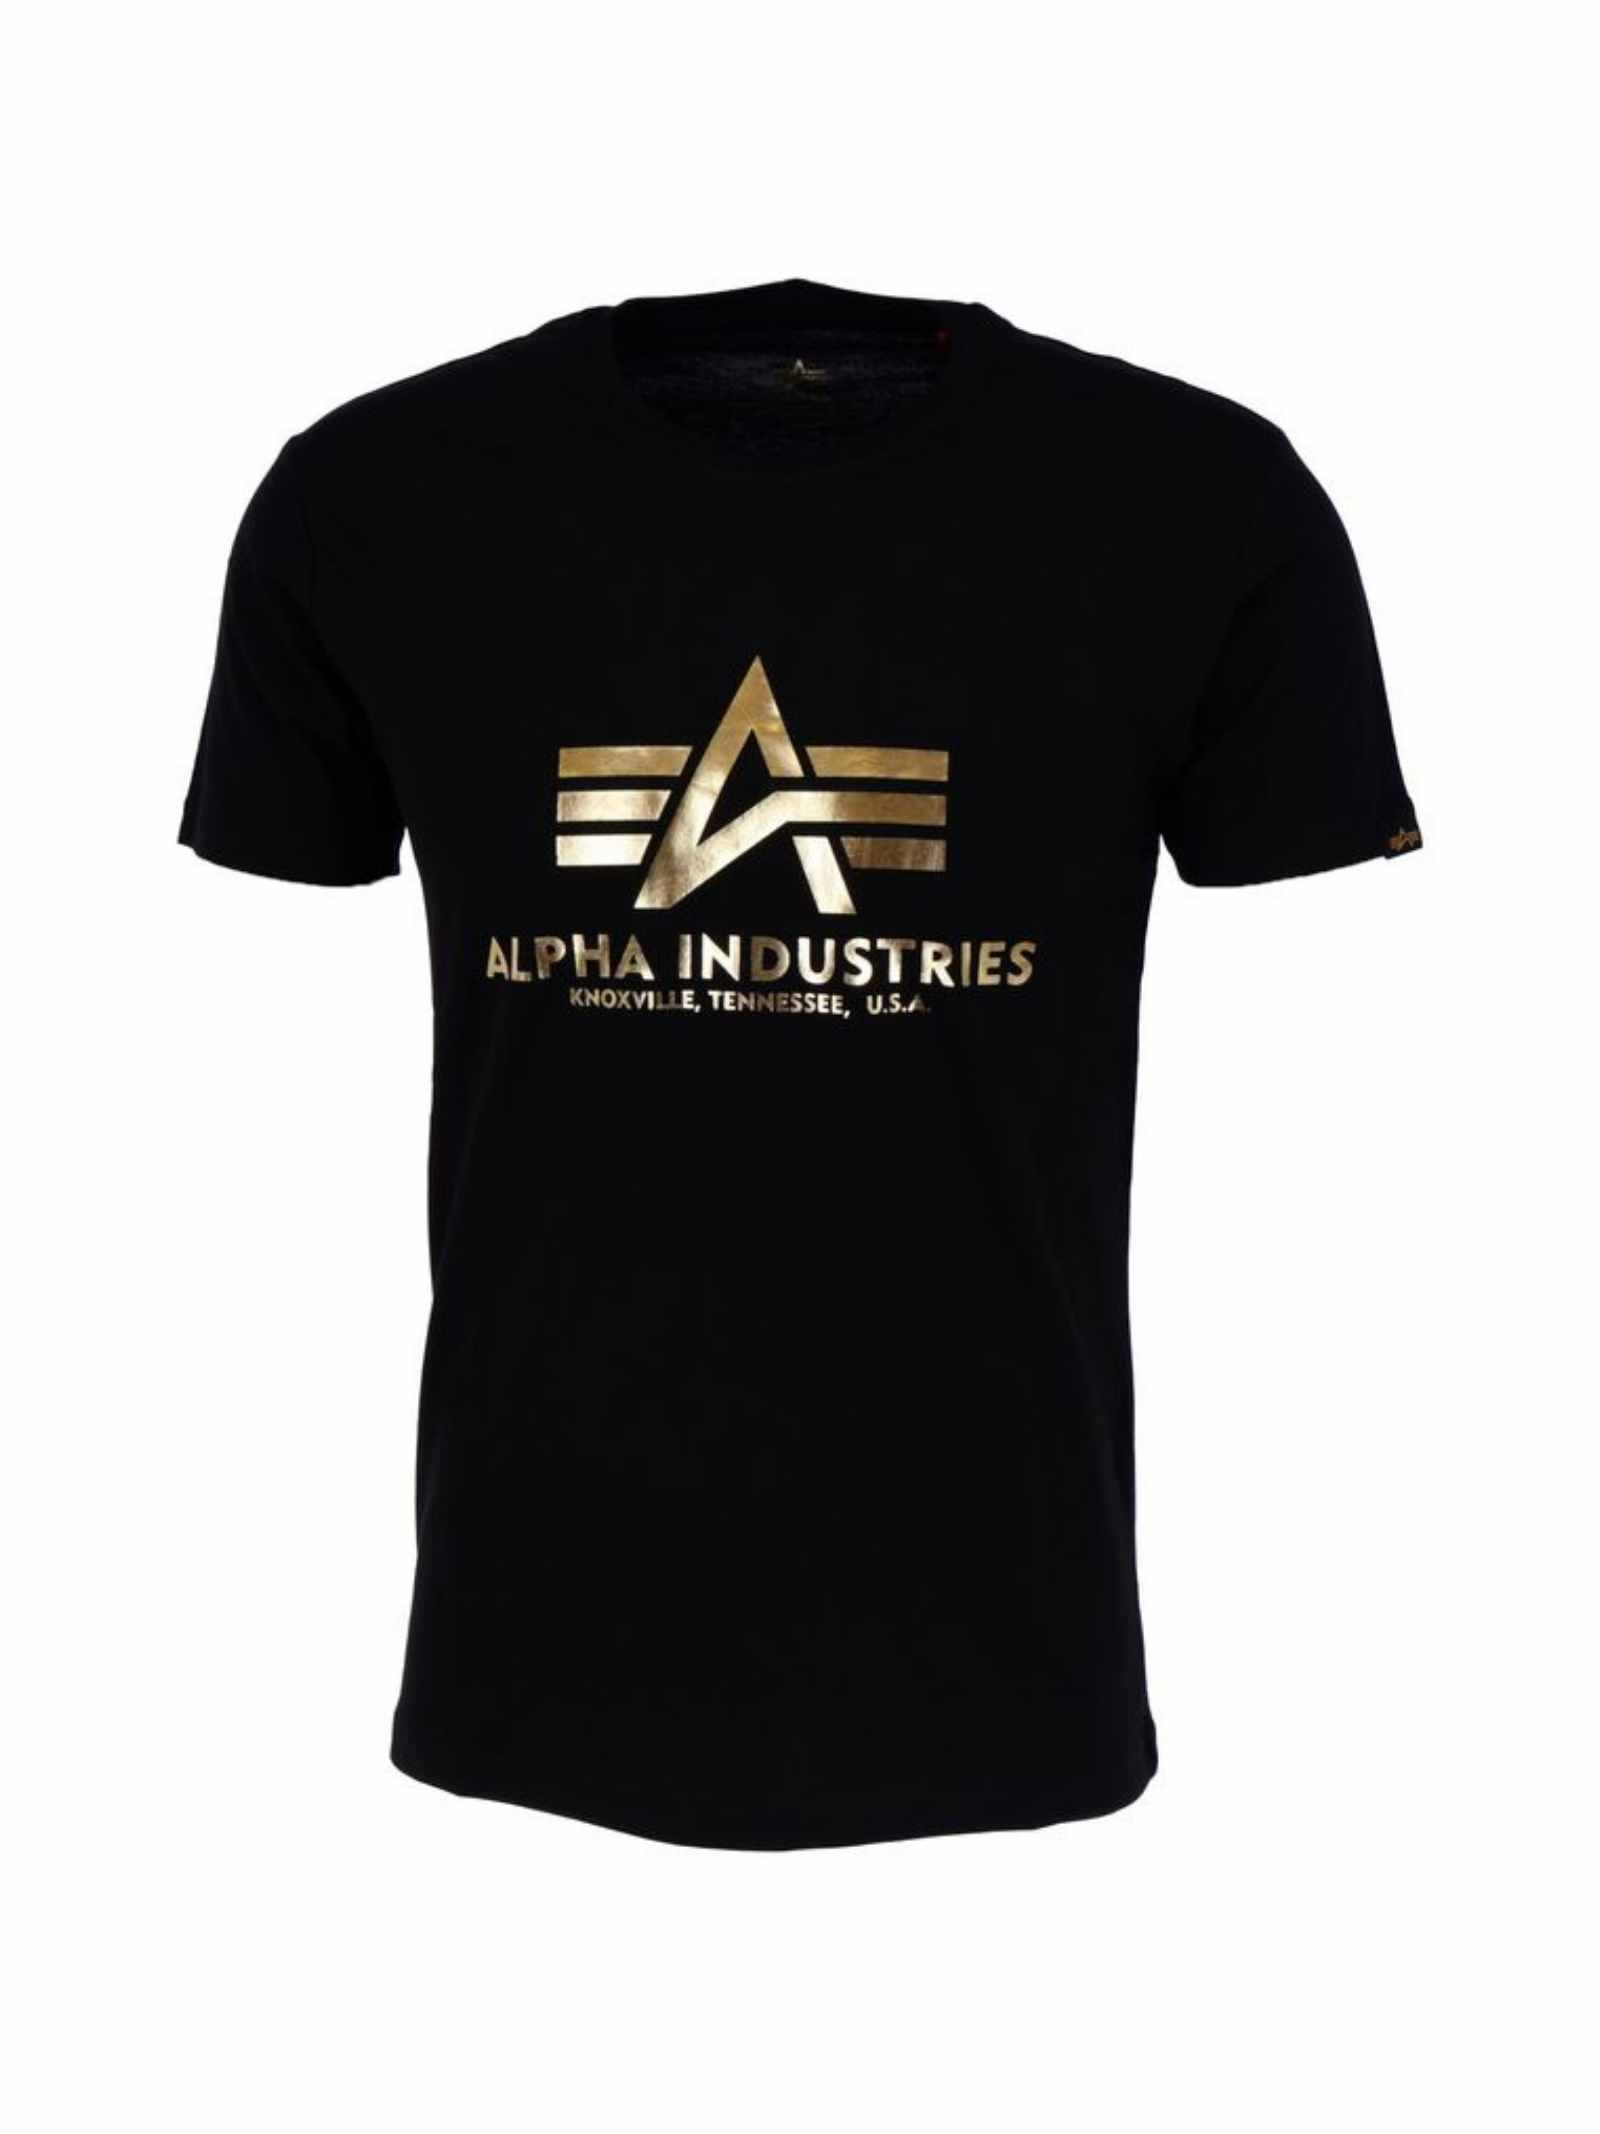 T-shirt nera con stampa oro ALPHA INDUSTRIES   T-shirt   100501FP583